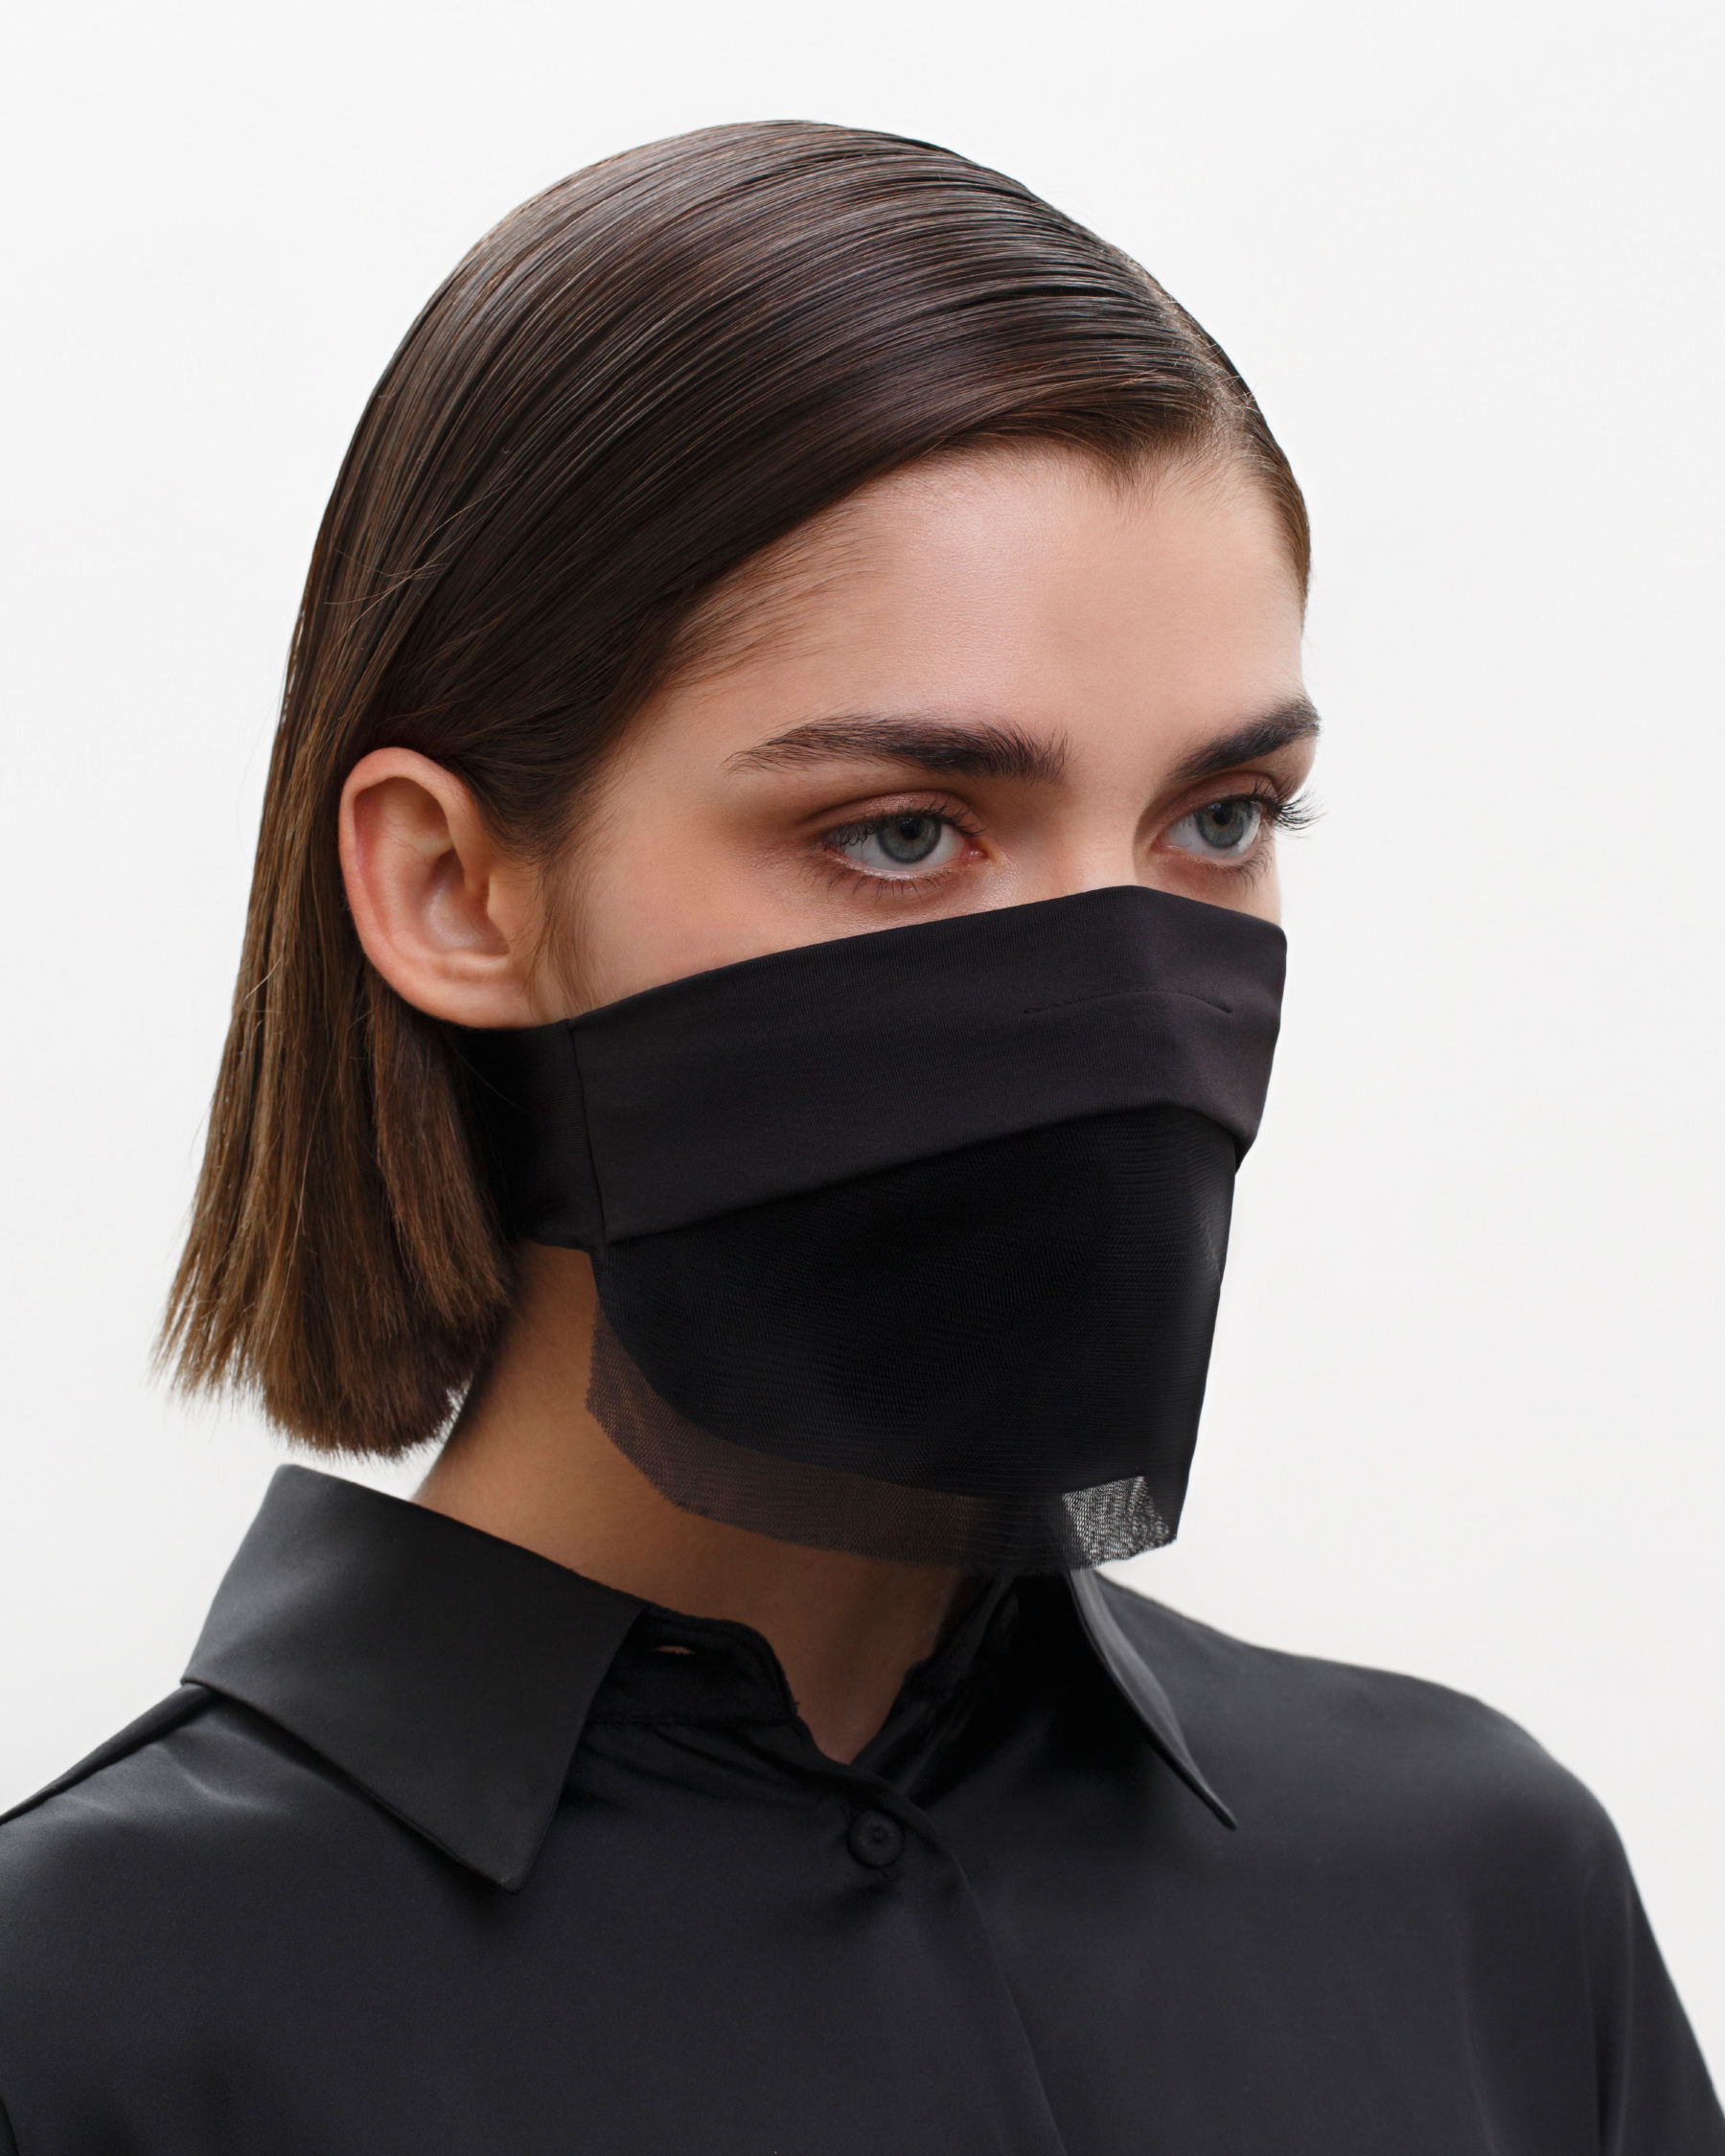 FAKBYFAK  Fashion Face Covering with a Veil, Ear Strap-Free. The FAKOUT. Black Code: FBF-42102-01